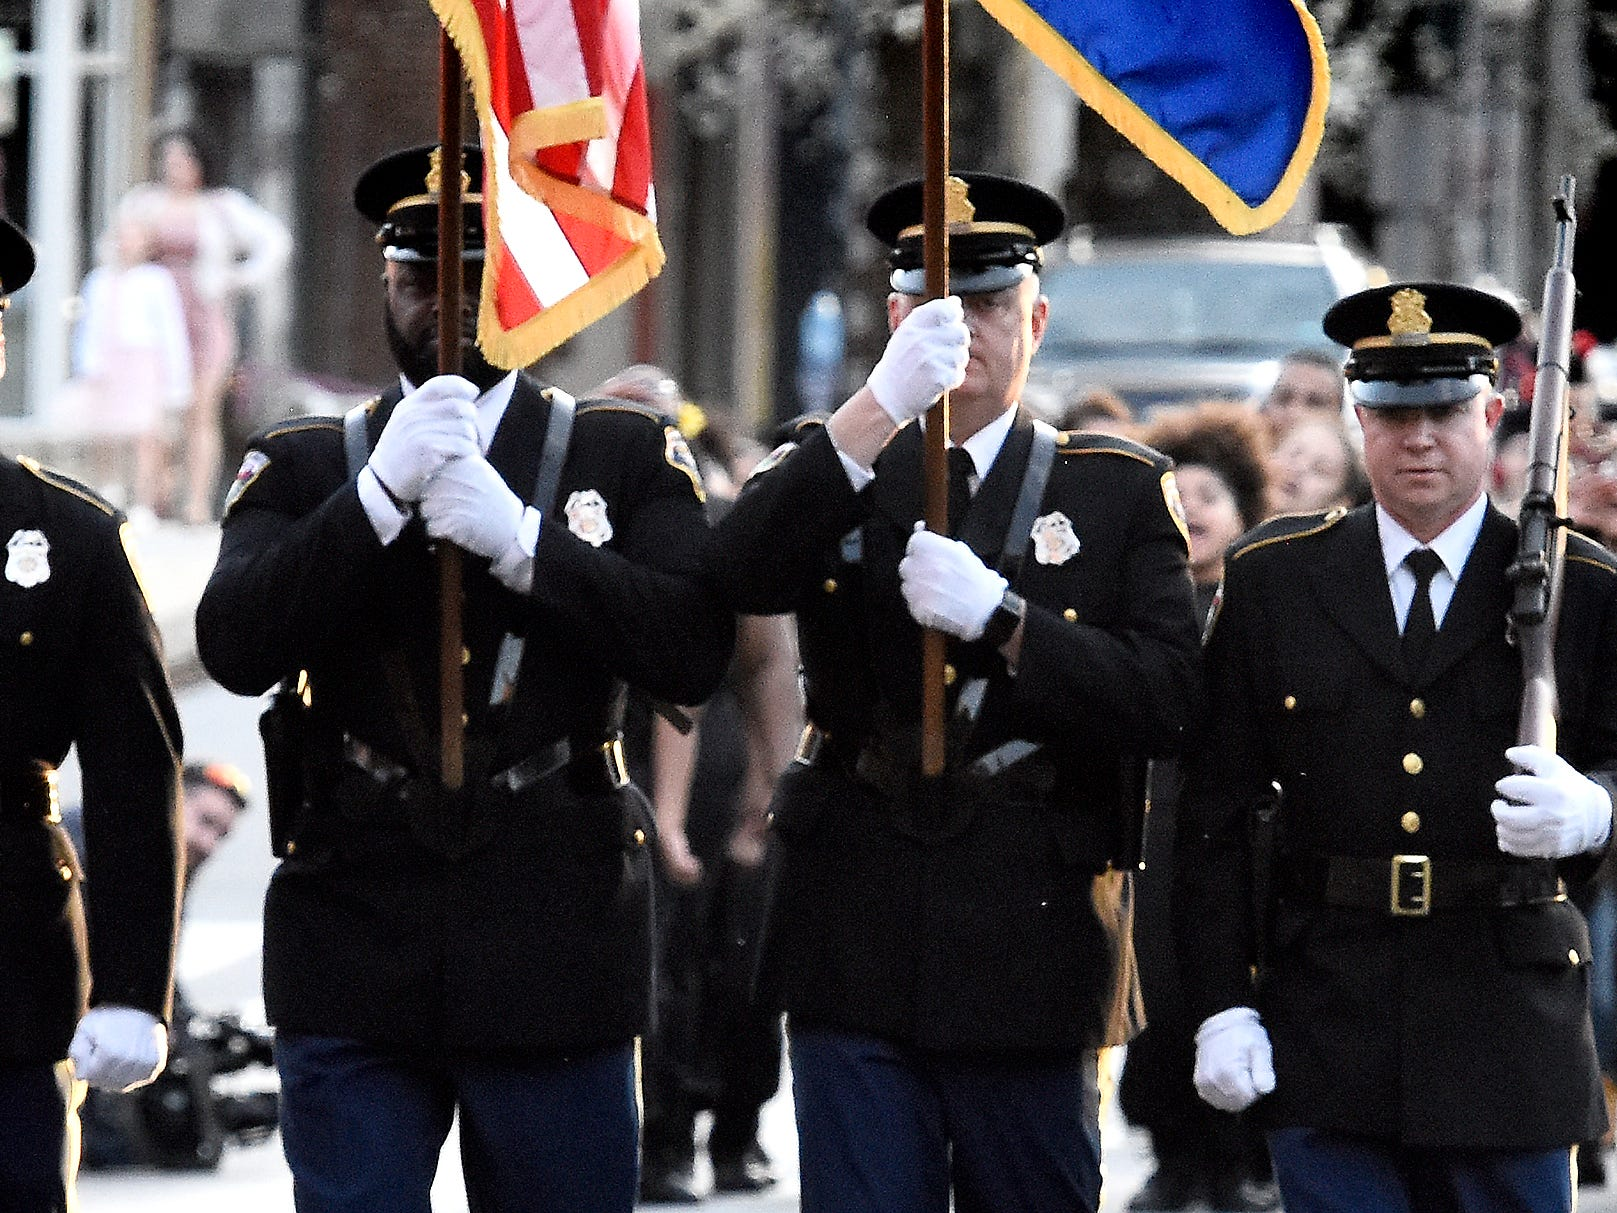 The York City Police F.O.P. Honor Guard leads a march along West Market street from Colonial Courthouse to Trinity United Church of Christ during the 33rd annual Crime Victims' Rights March and Candlelight Vigil Tuesday, April 9, 2019. Participants gathered at the courthouse for a presentation before marching to the church for a ceremony and candlelight vigil. The York County Victims' Rights Coalition sponsored the event  to coincide with National Crime Victims' Rights Week. Bill Kalina photo